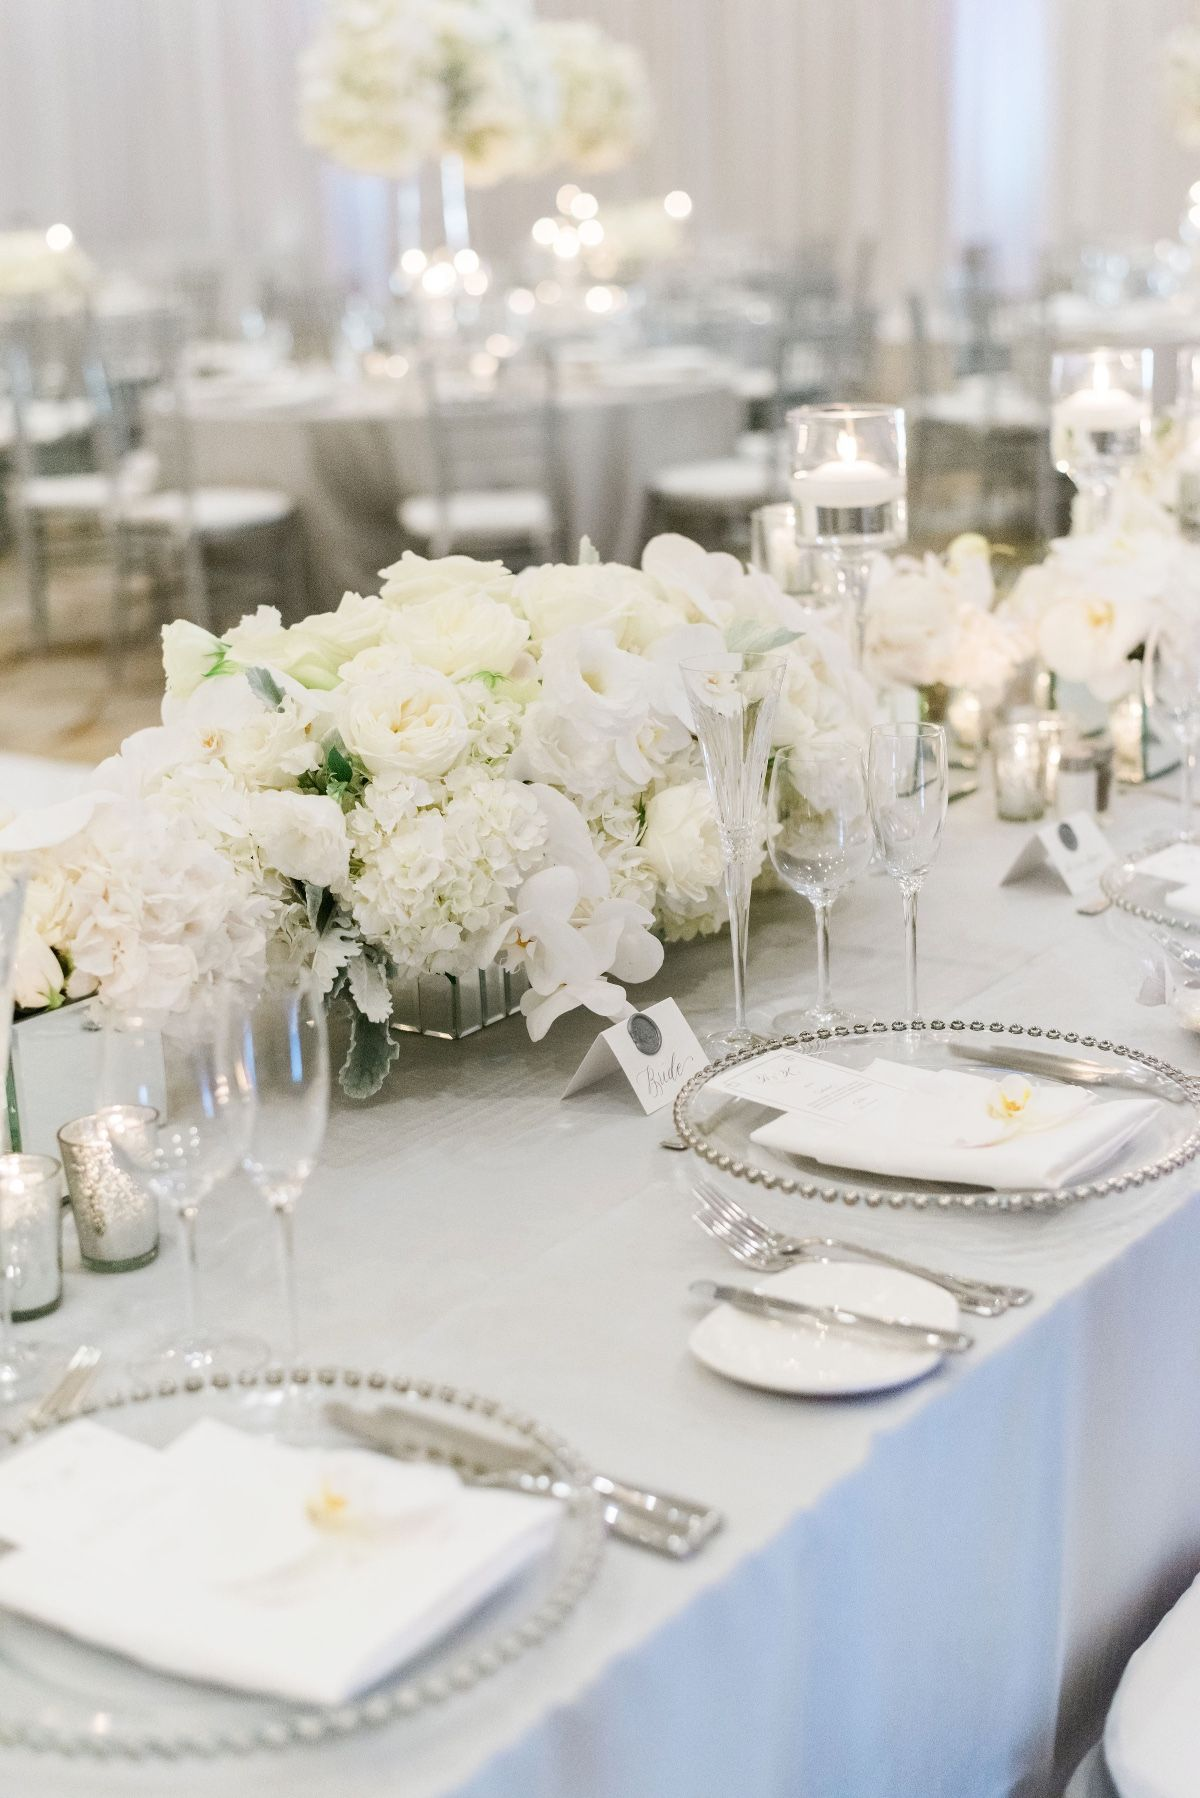 Luxury Glam Wedding In Silver And White Silver Wedding Reception Glam Wedding Grey Wedding Decor